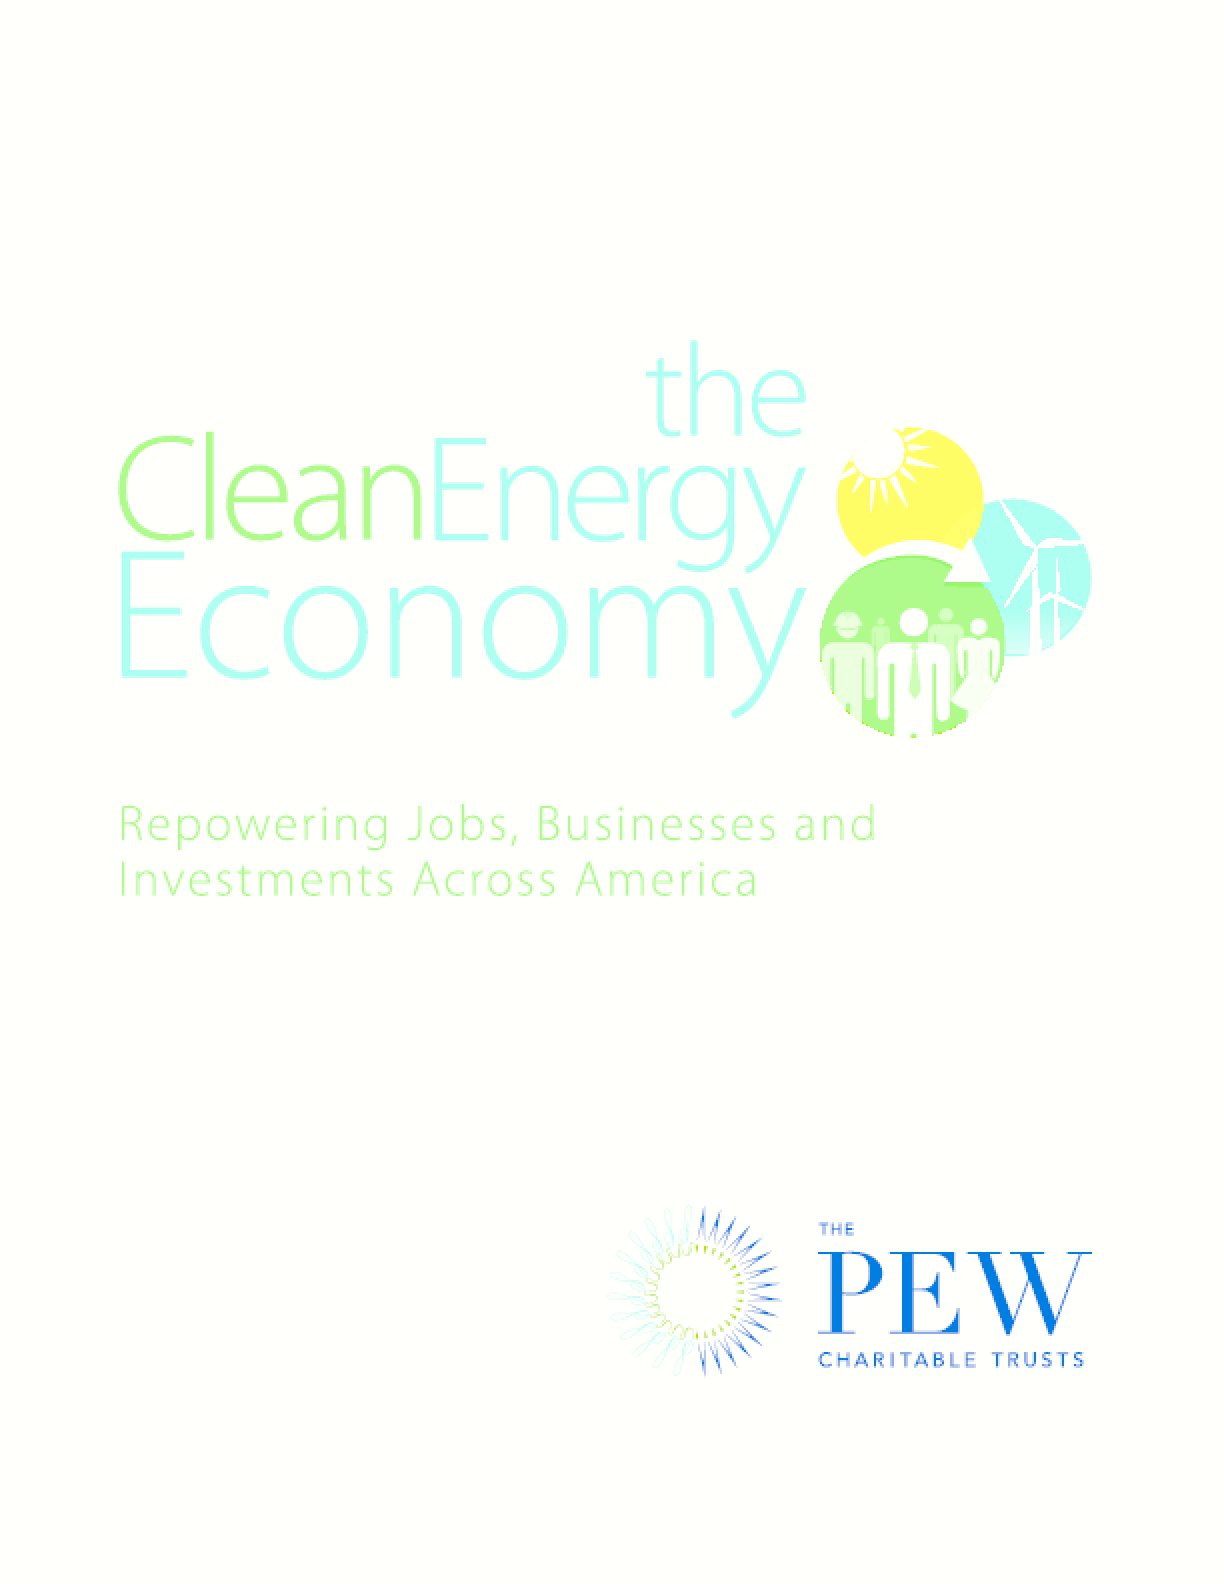 The Clean Energy Economy: Repowering Jobs, Businesses and Investments Across America